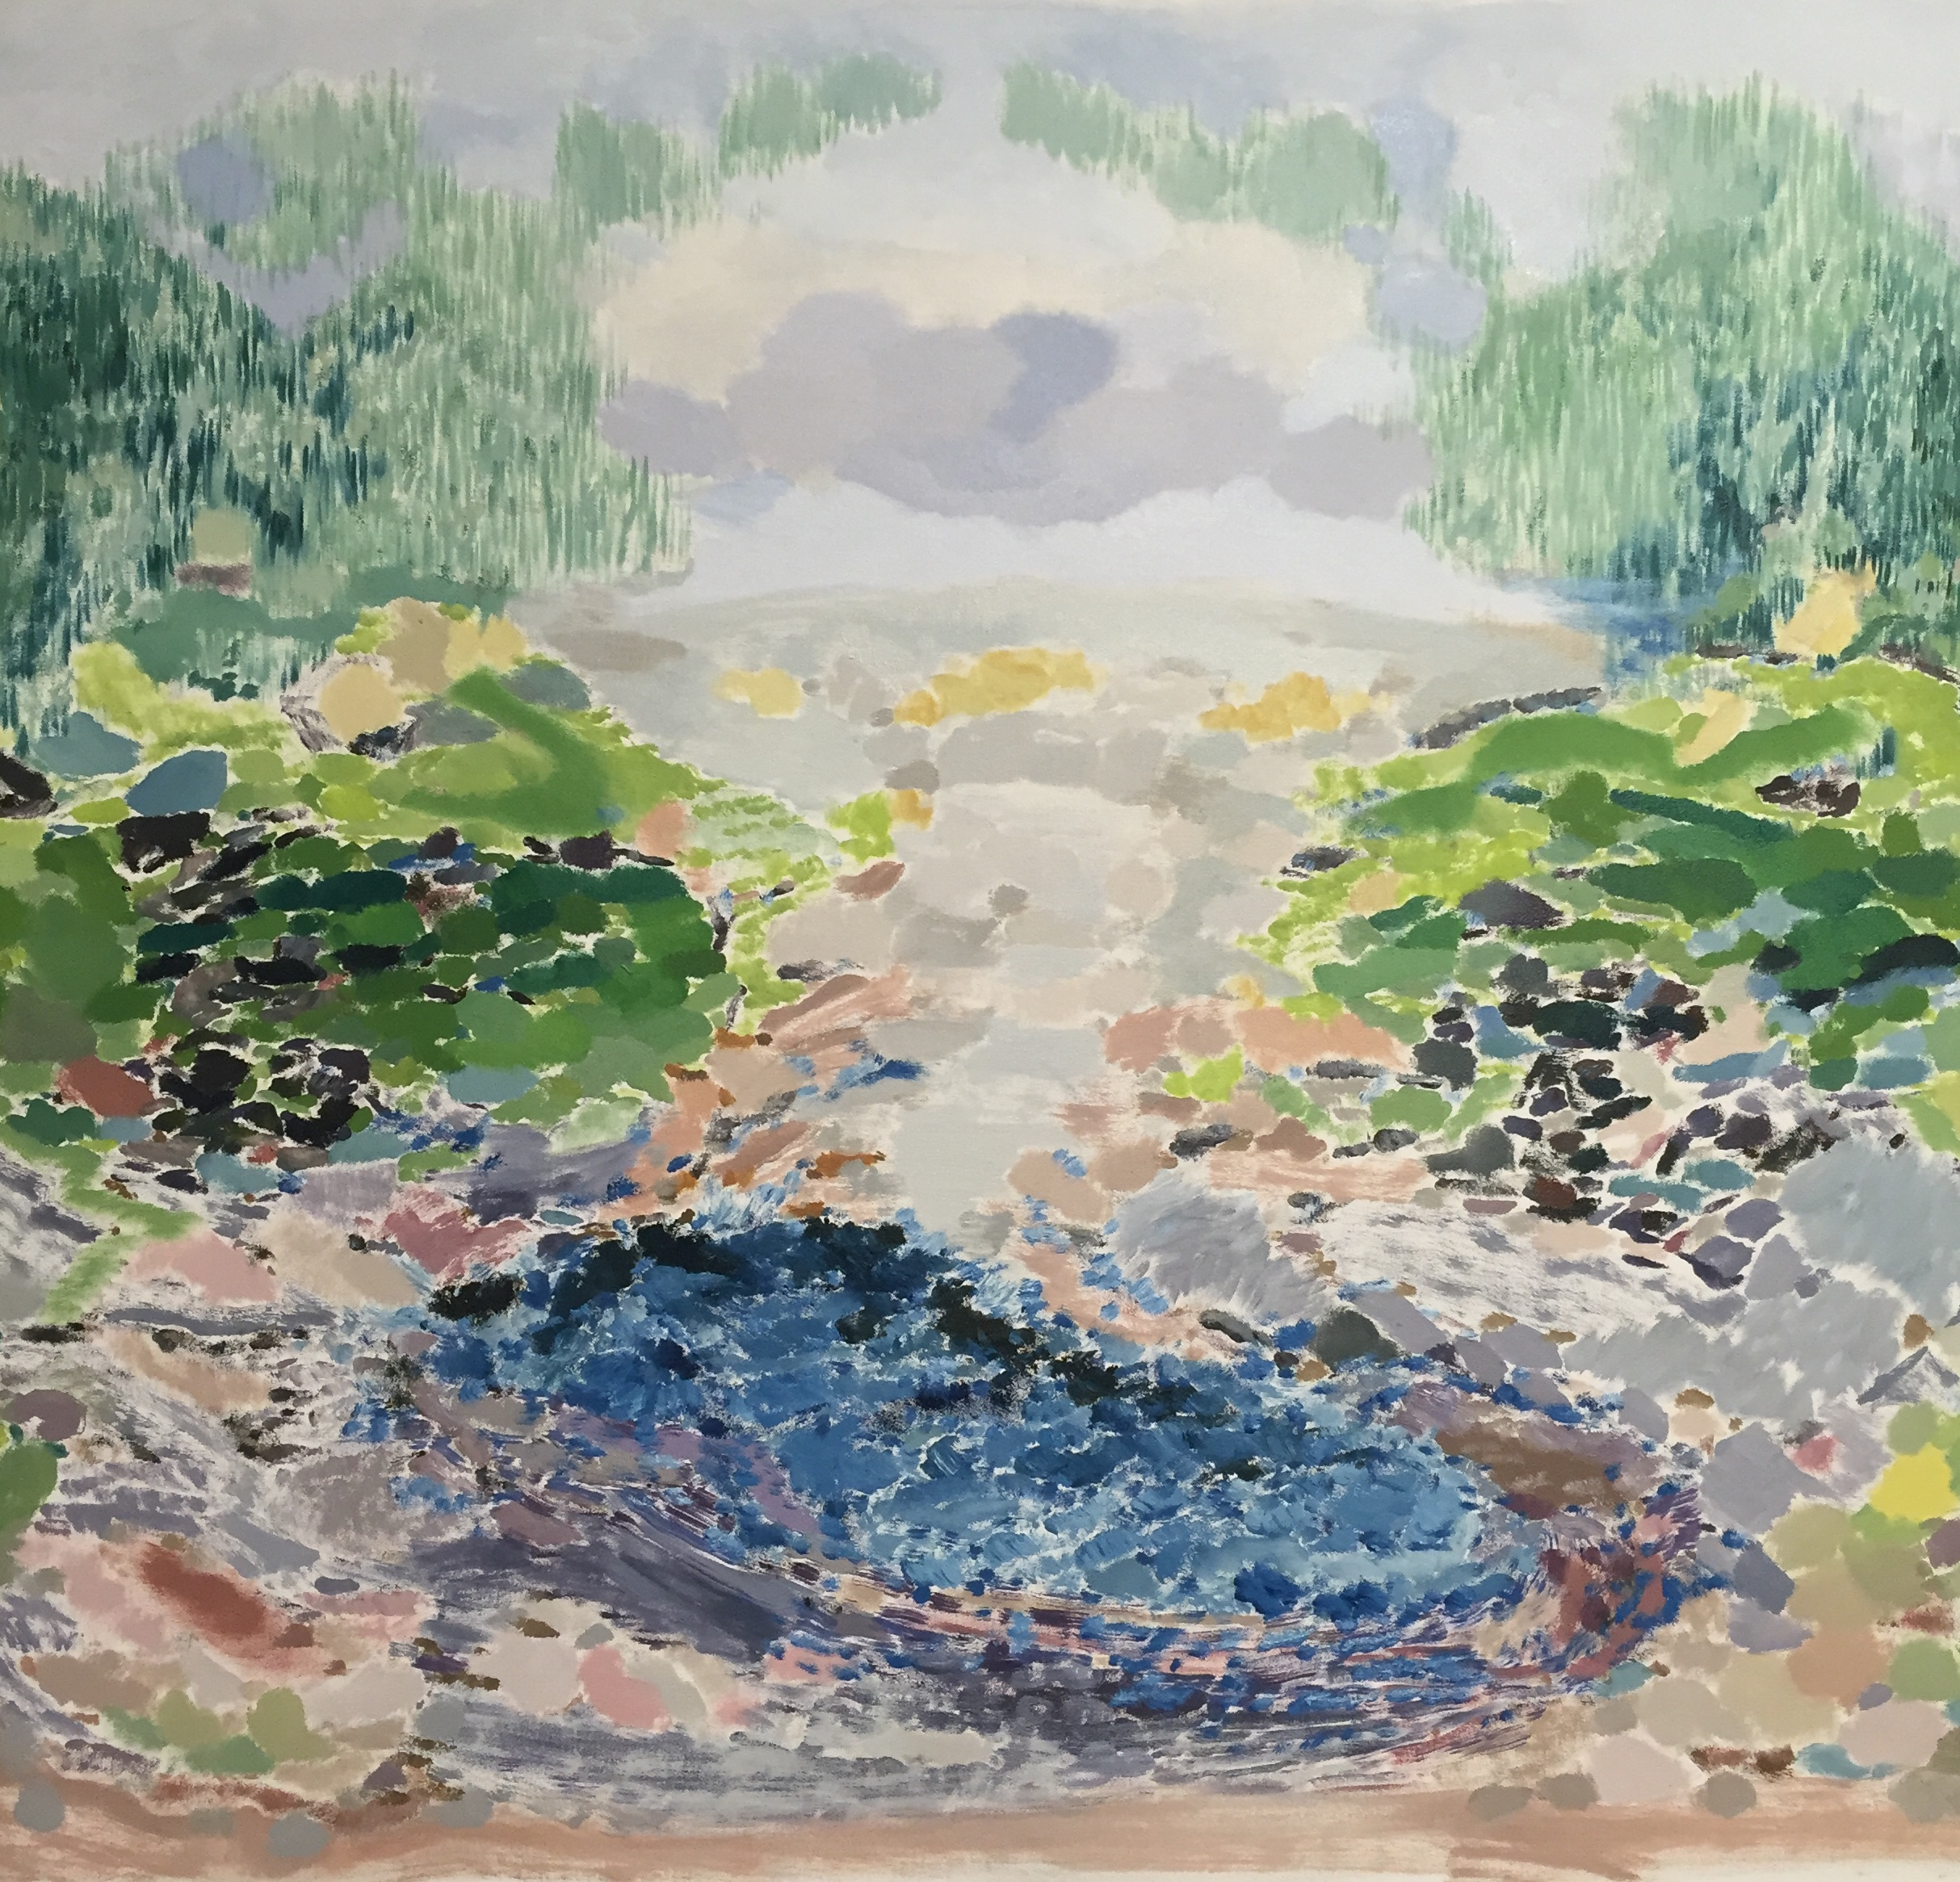 Landscape With Water & Green, 2018